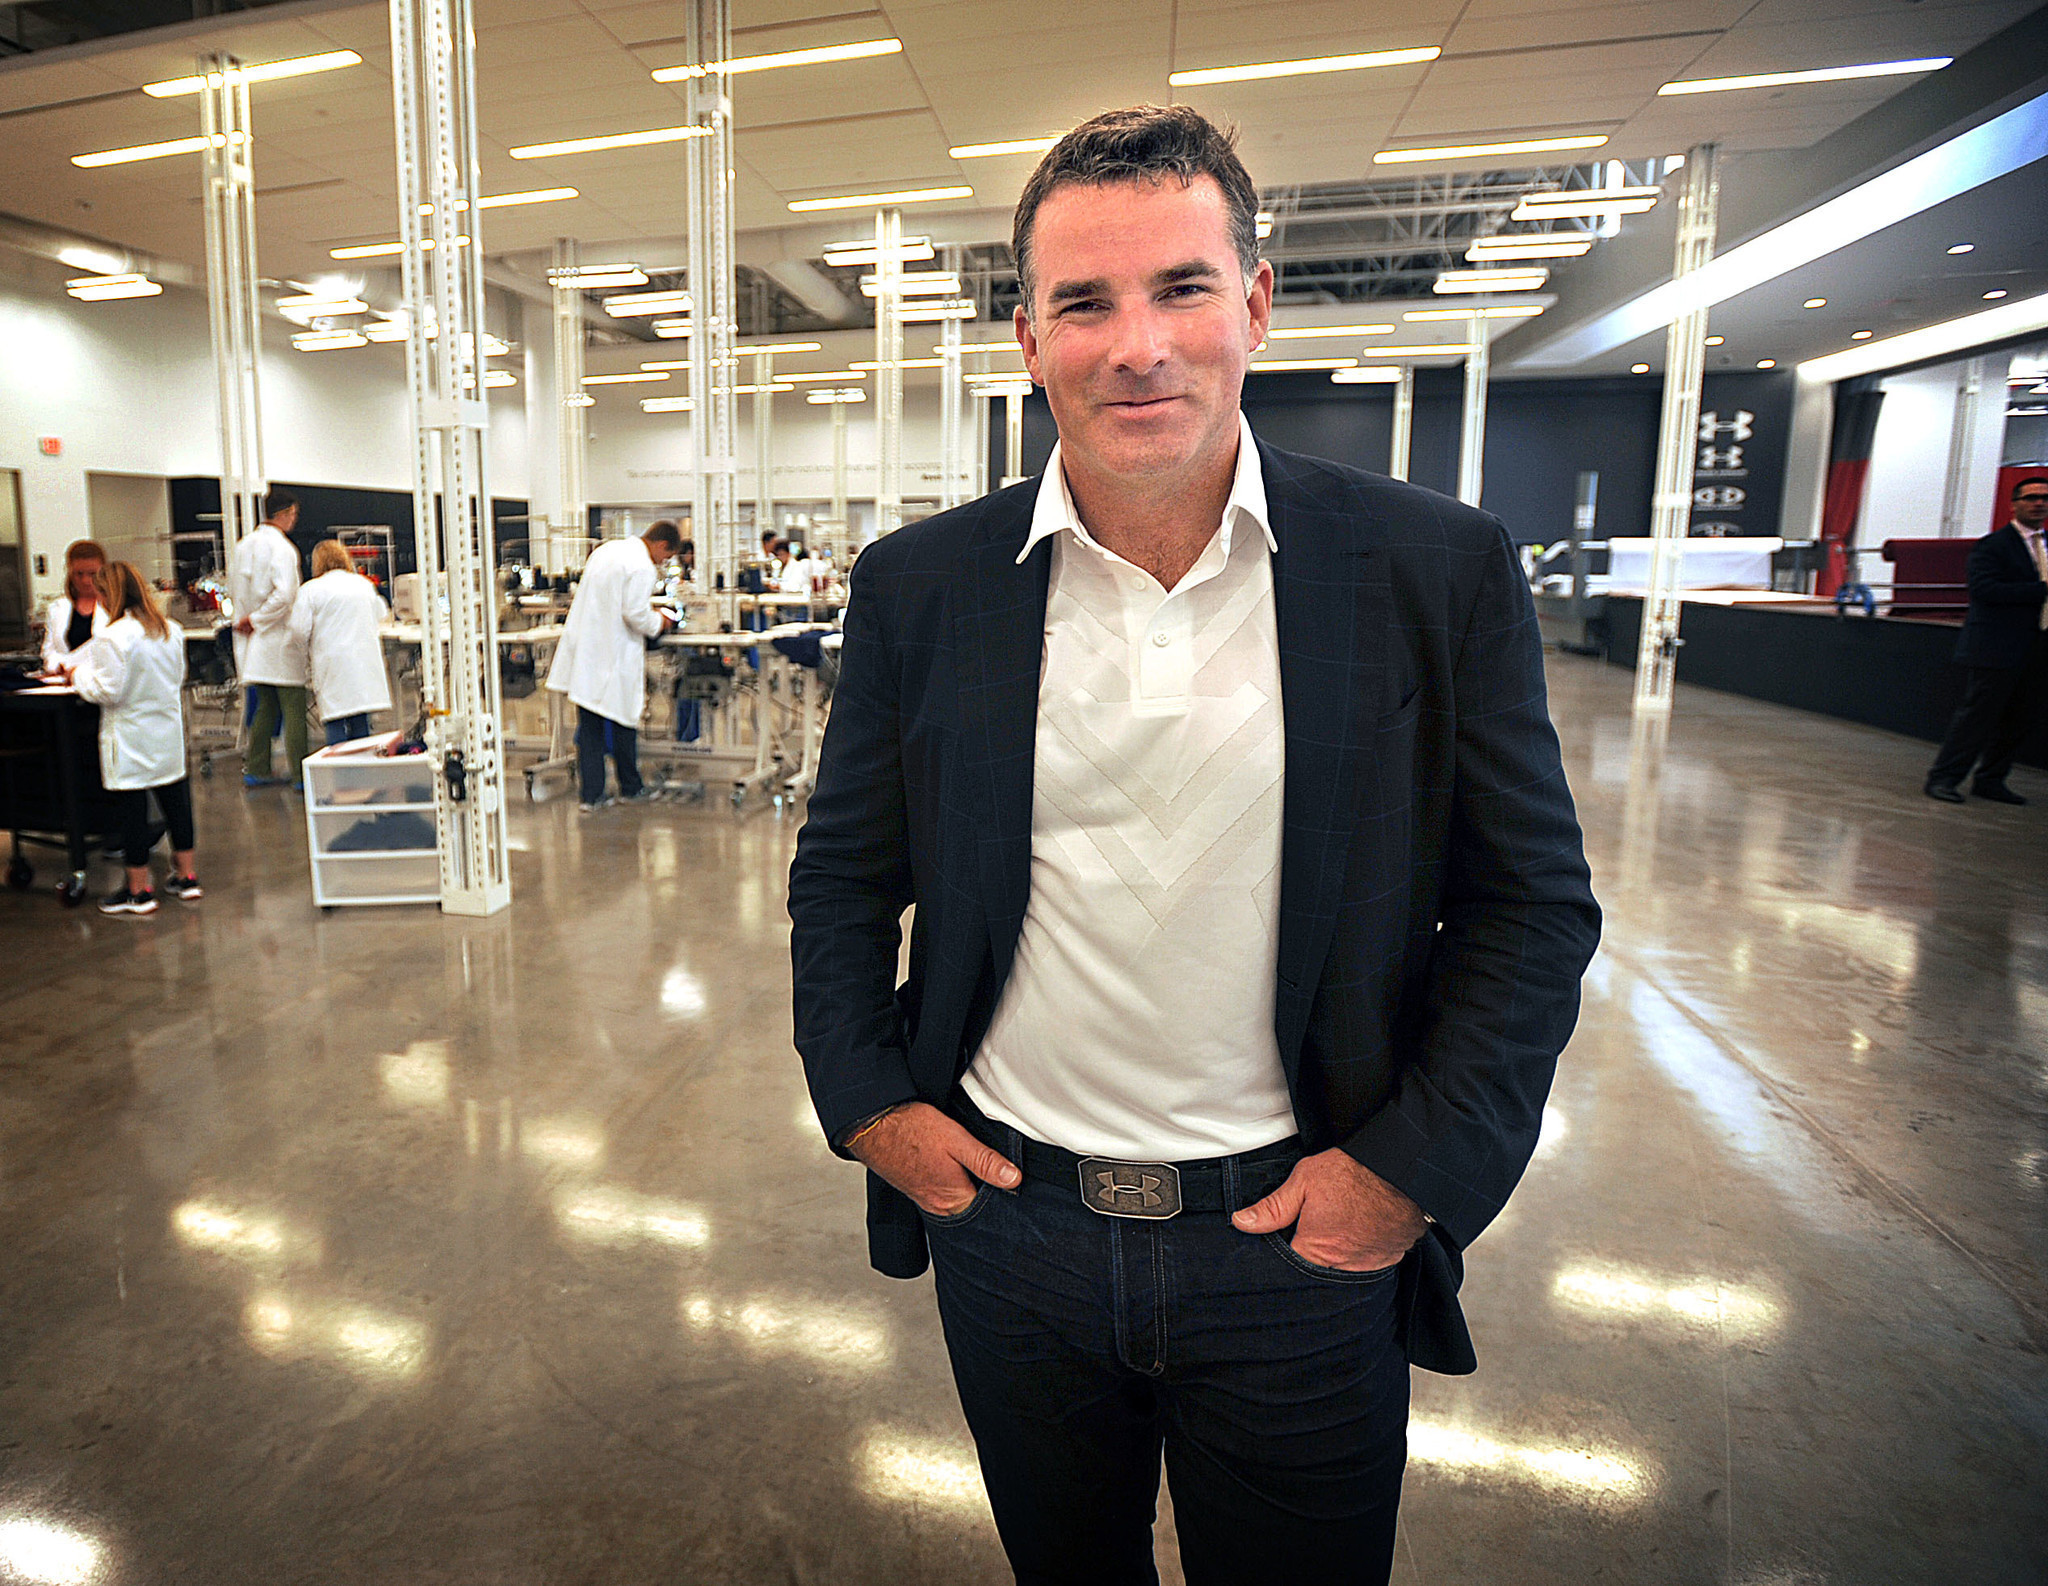 f79e43f93 Under Armour reckons with backlash to CEO's comments on Trump - Baltimore  Sun